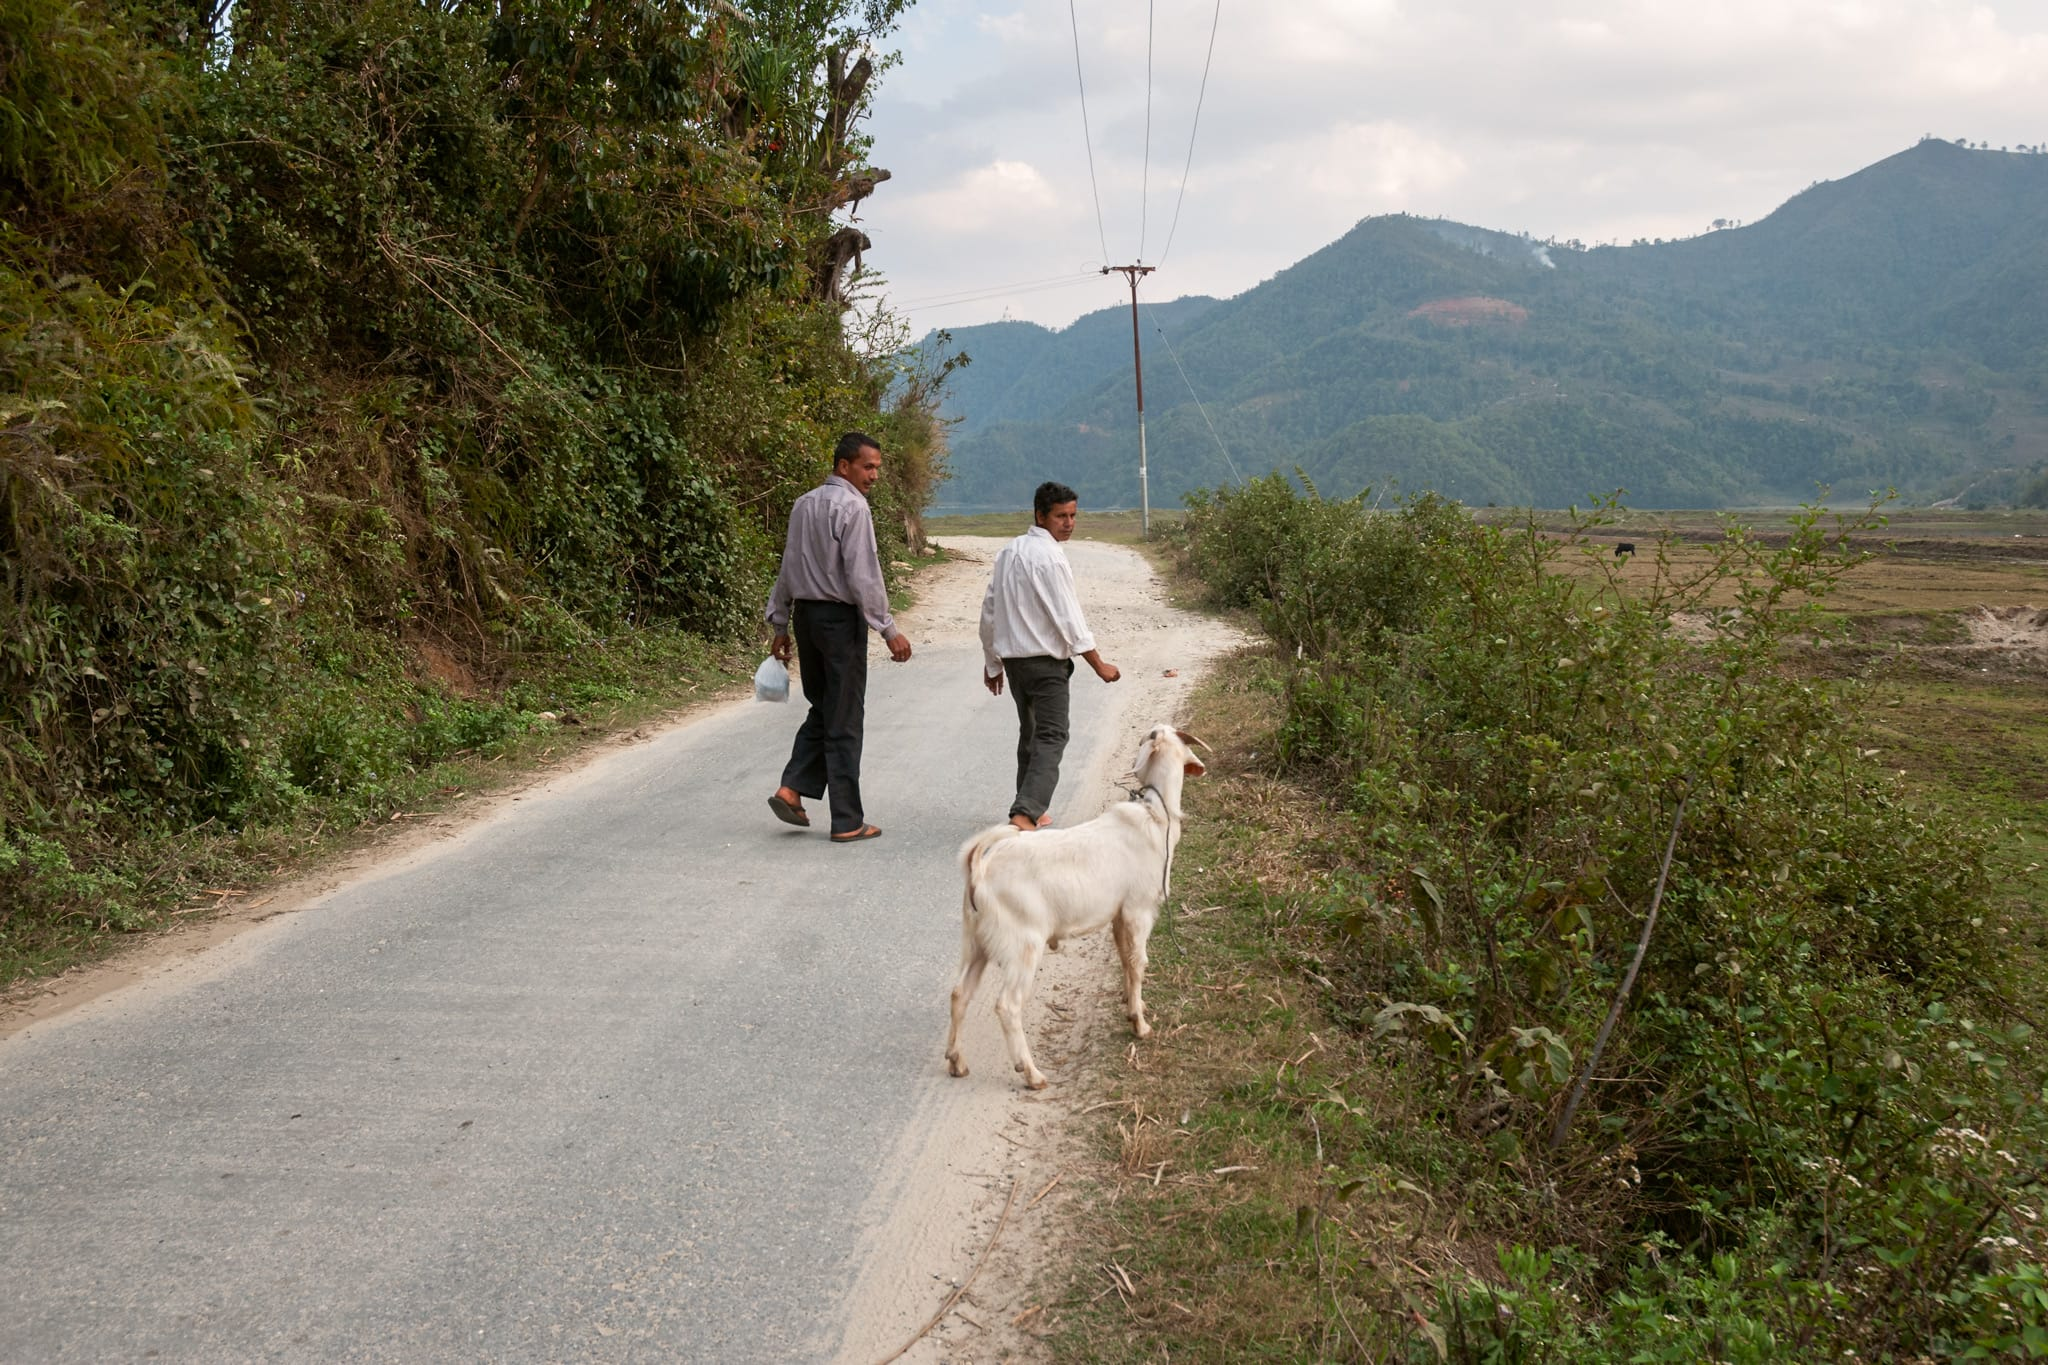 Two Nepalese men and goat walk on a countryside road near Pokhara, Nepal.